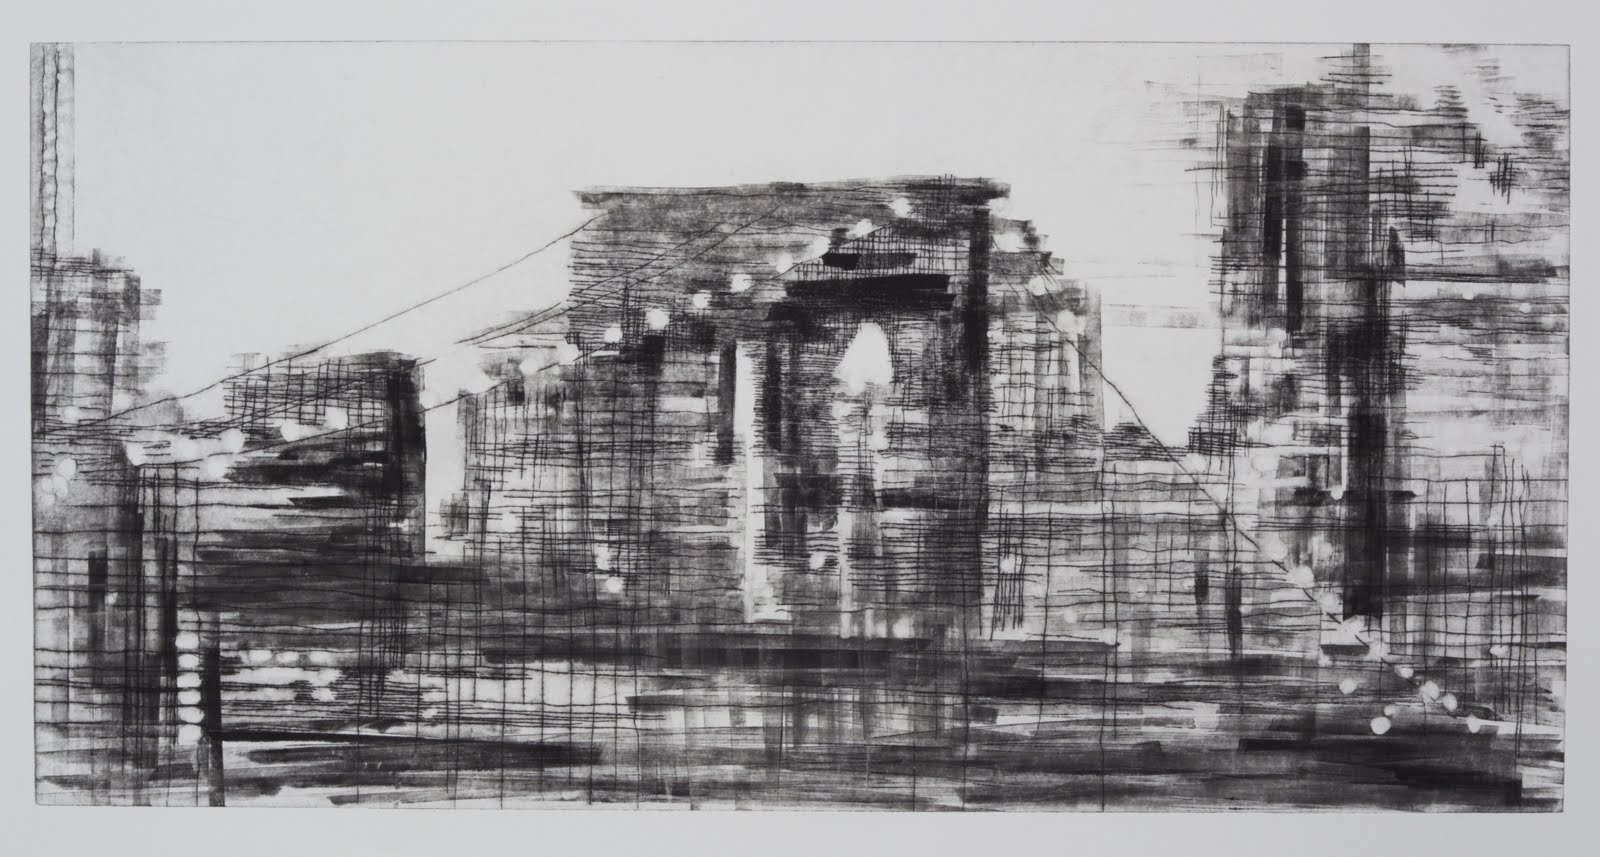 """""""Building a Bridge II (3/4)"""", drypoint and monotype, 24 x 24 in."""